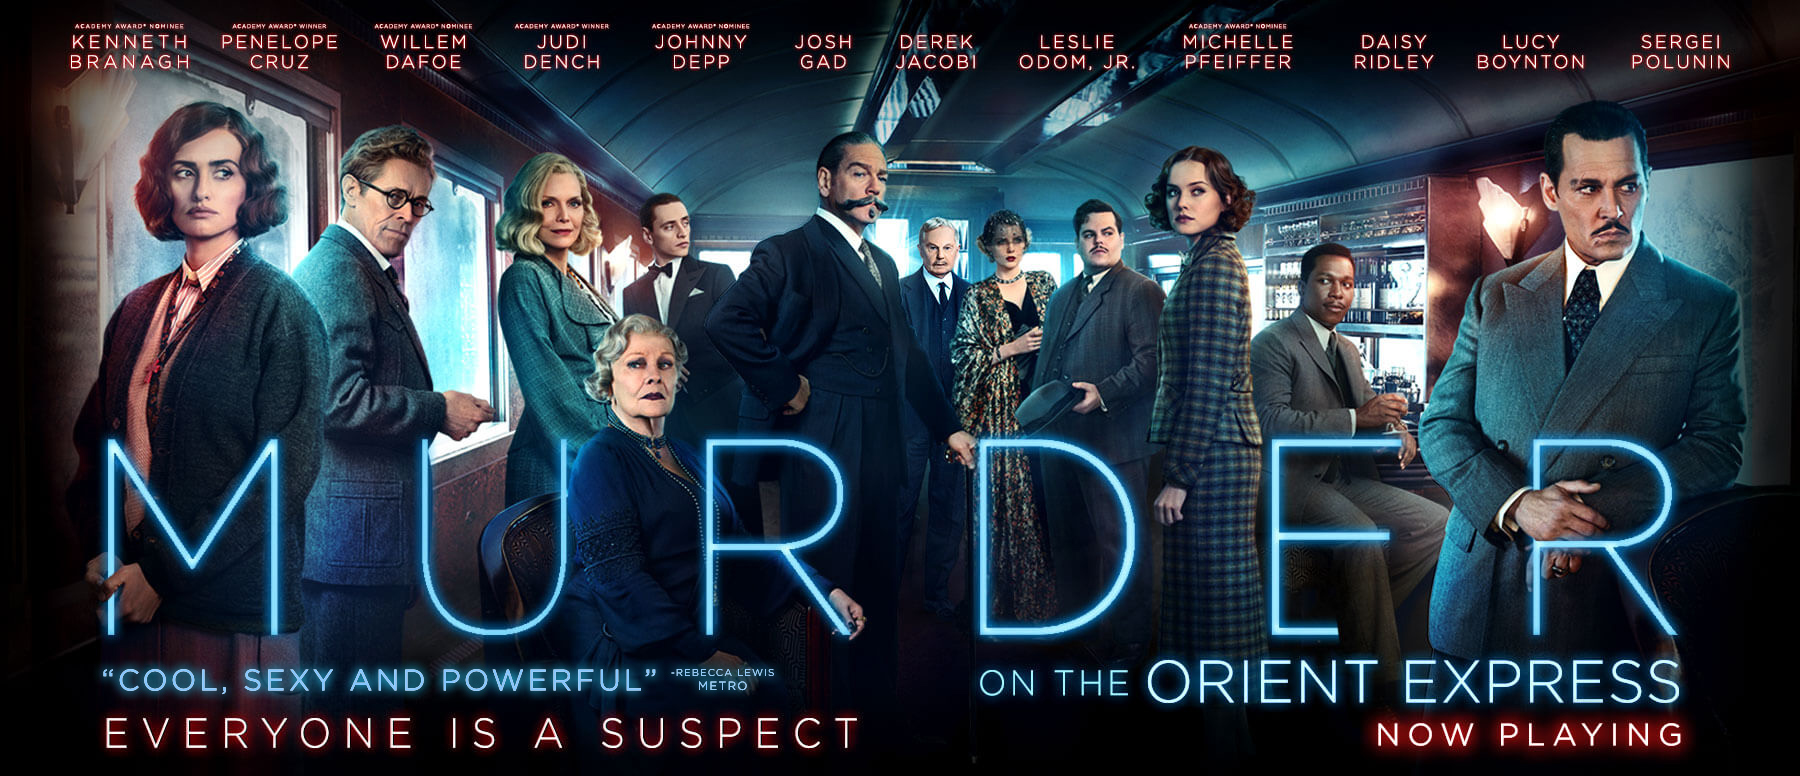 Murder on the orient express pic 1.jpg